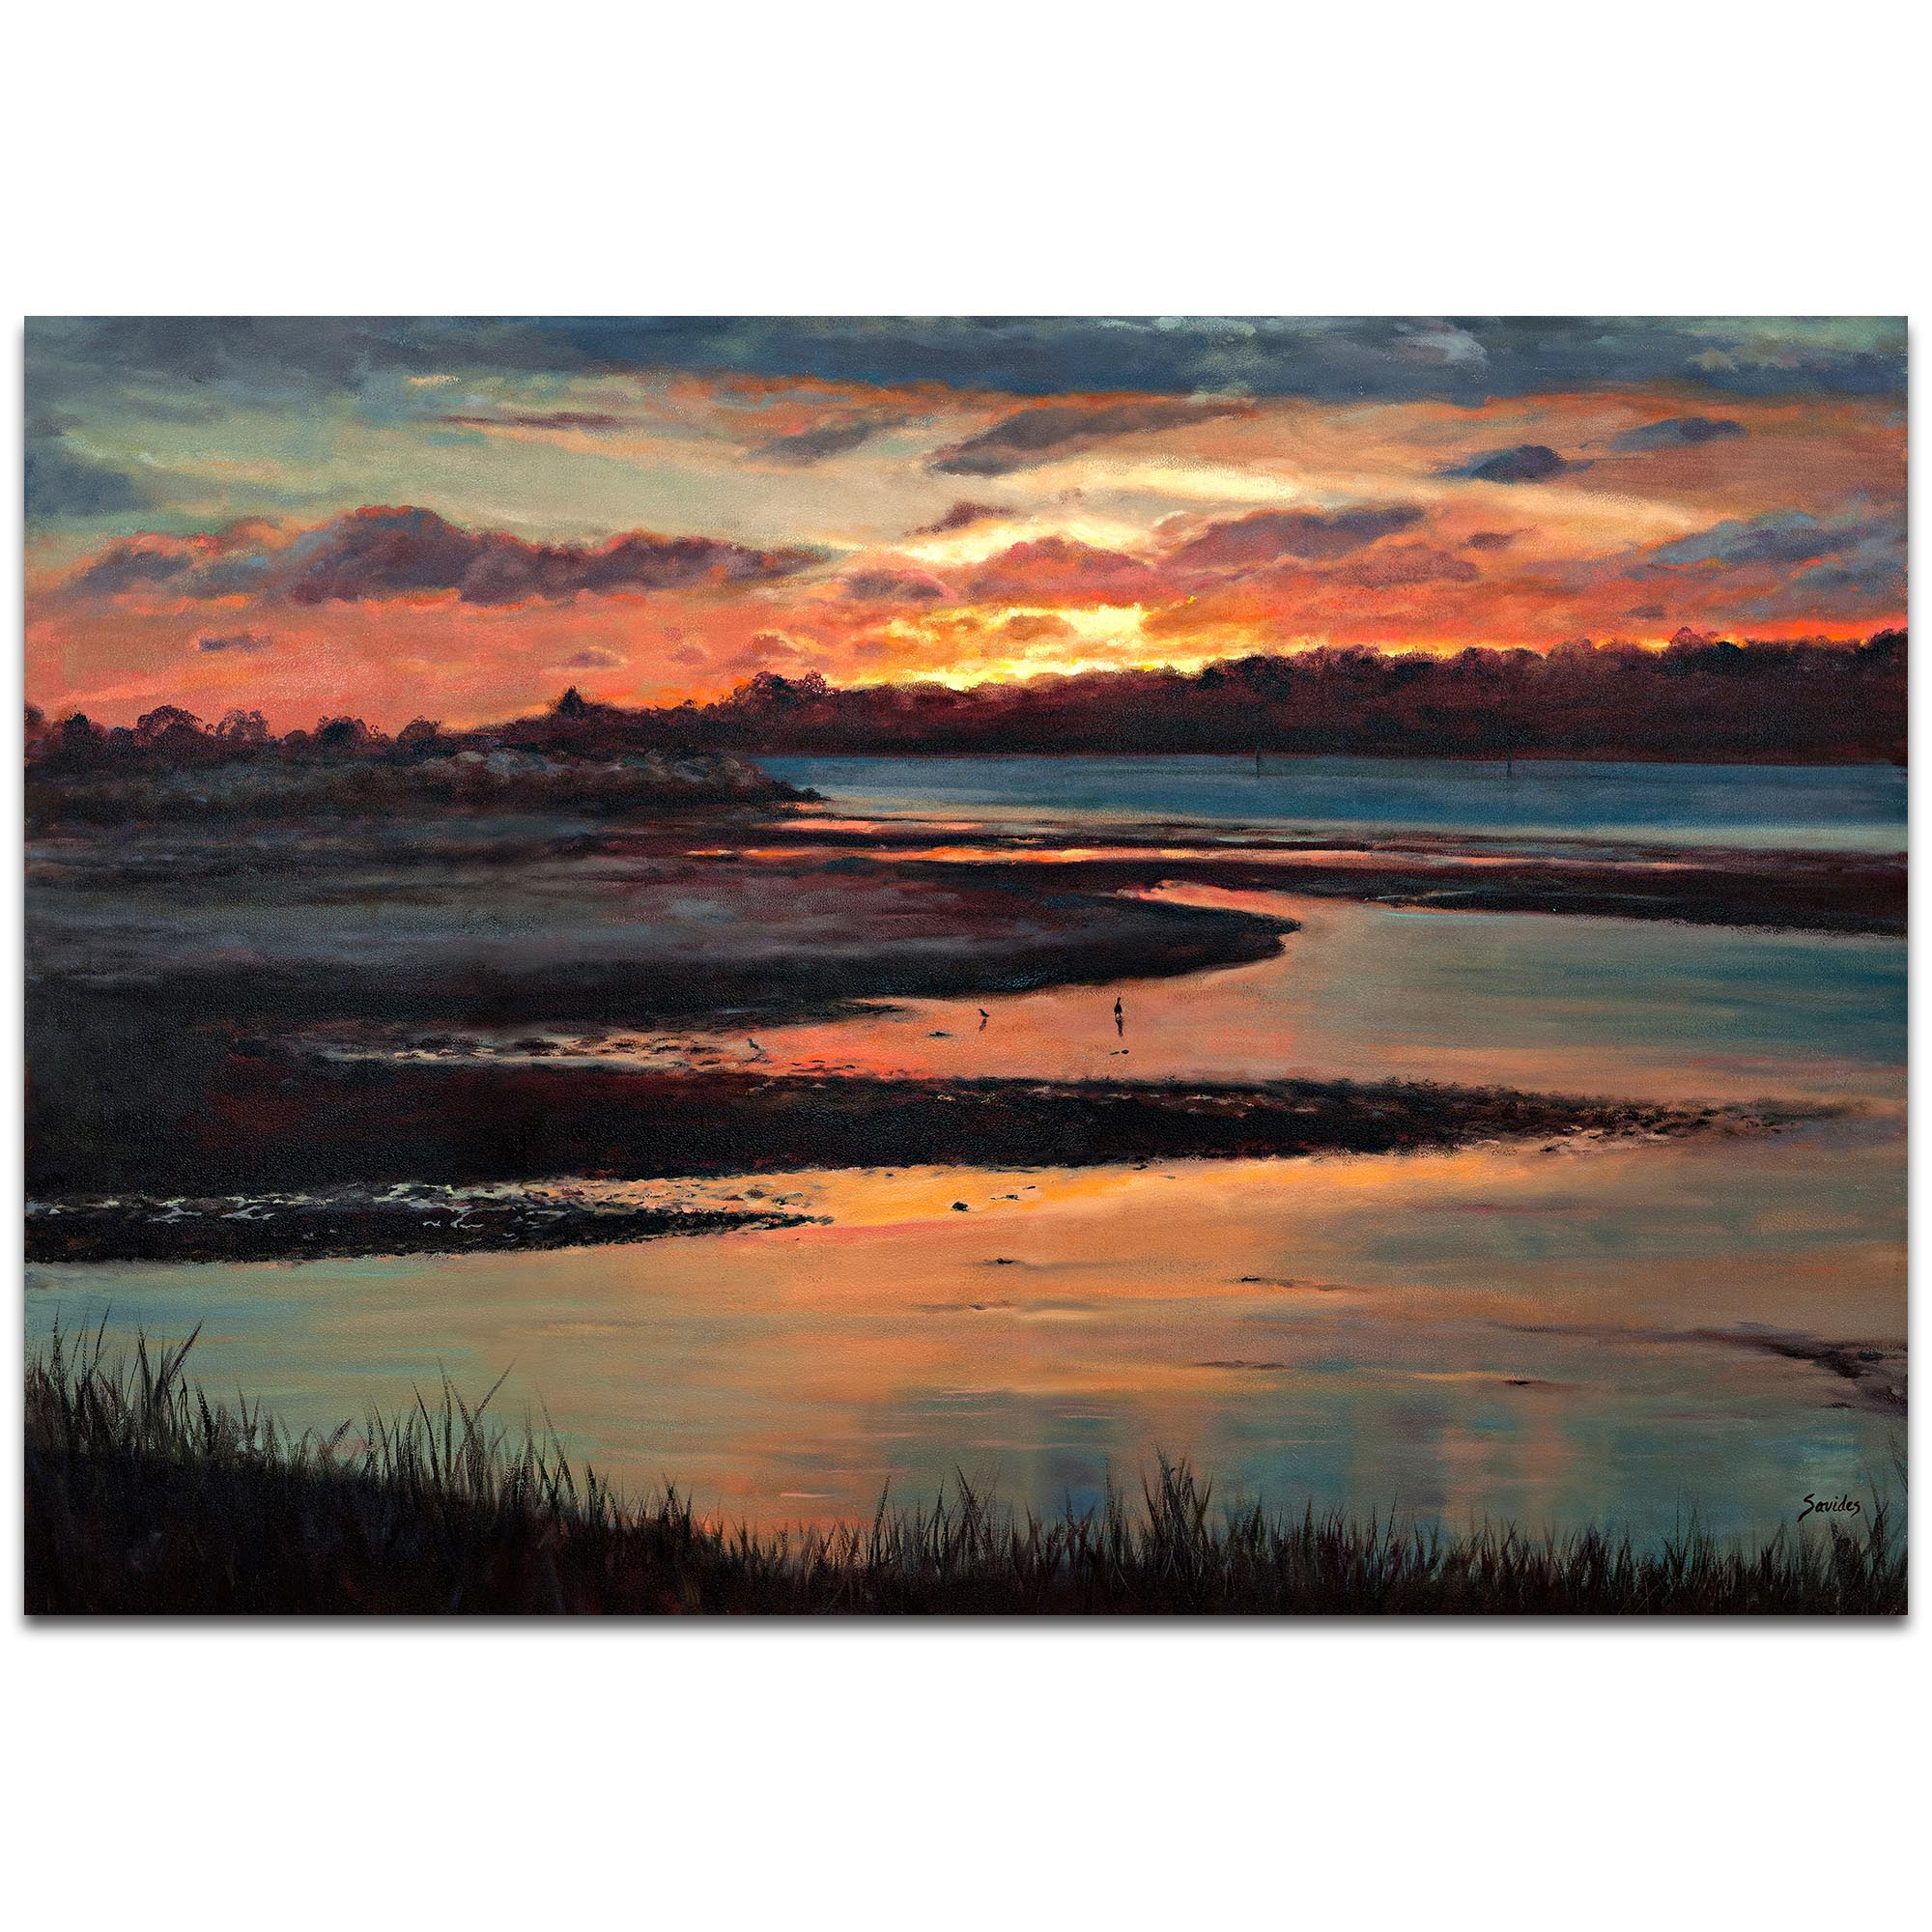 Traditional Wall Art 'Sunset' - River Landscape Decor on Metal or Plexiglass